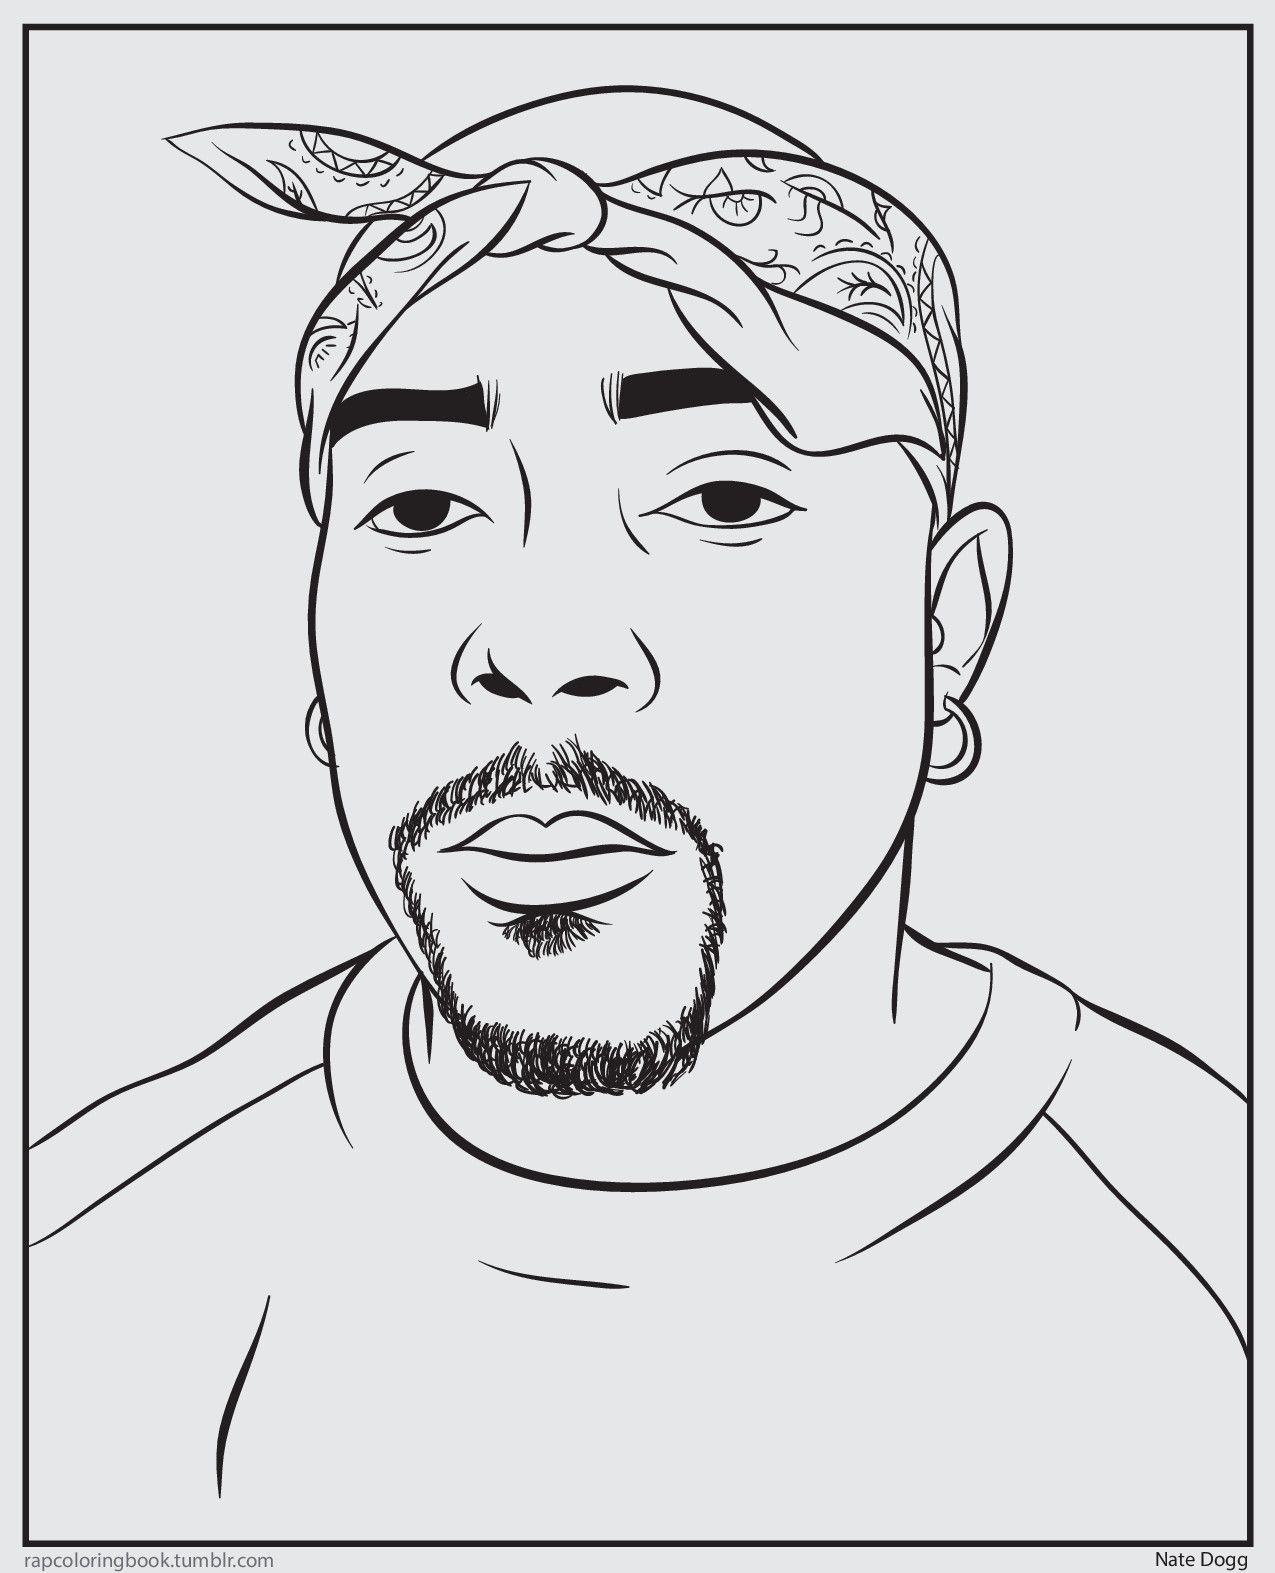 Bun B's Rap Coloring and Activity Book | Rapper art, Tupac art ... | 1573x1275